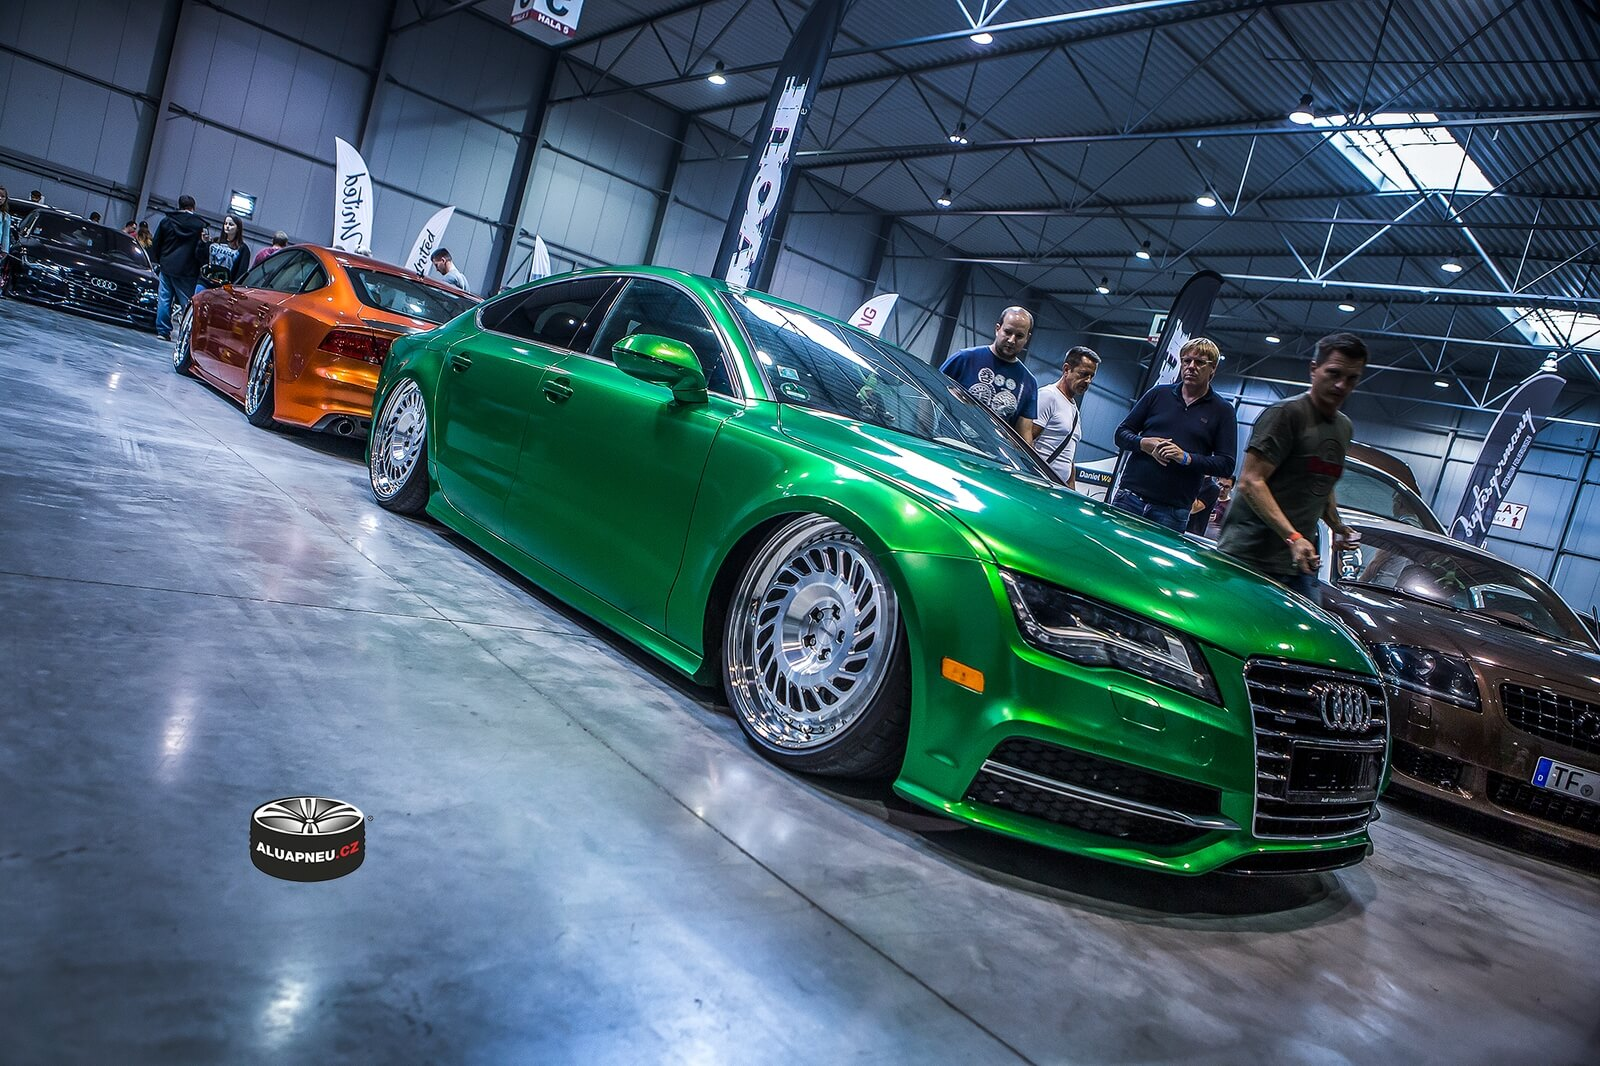 Alu kola Audi chrome lip Prague Car Festival 2018